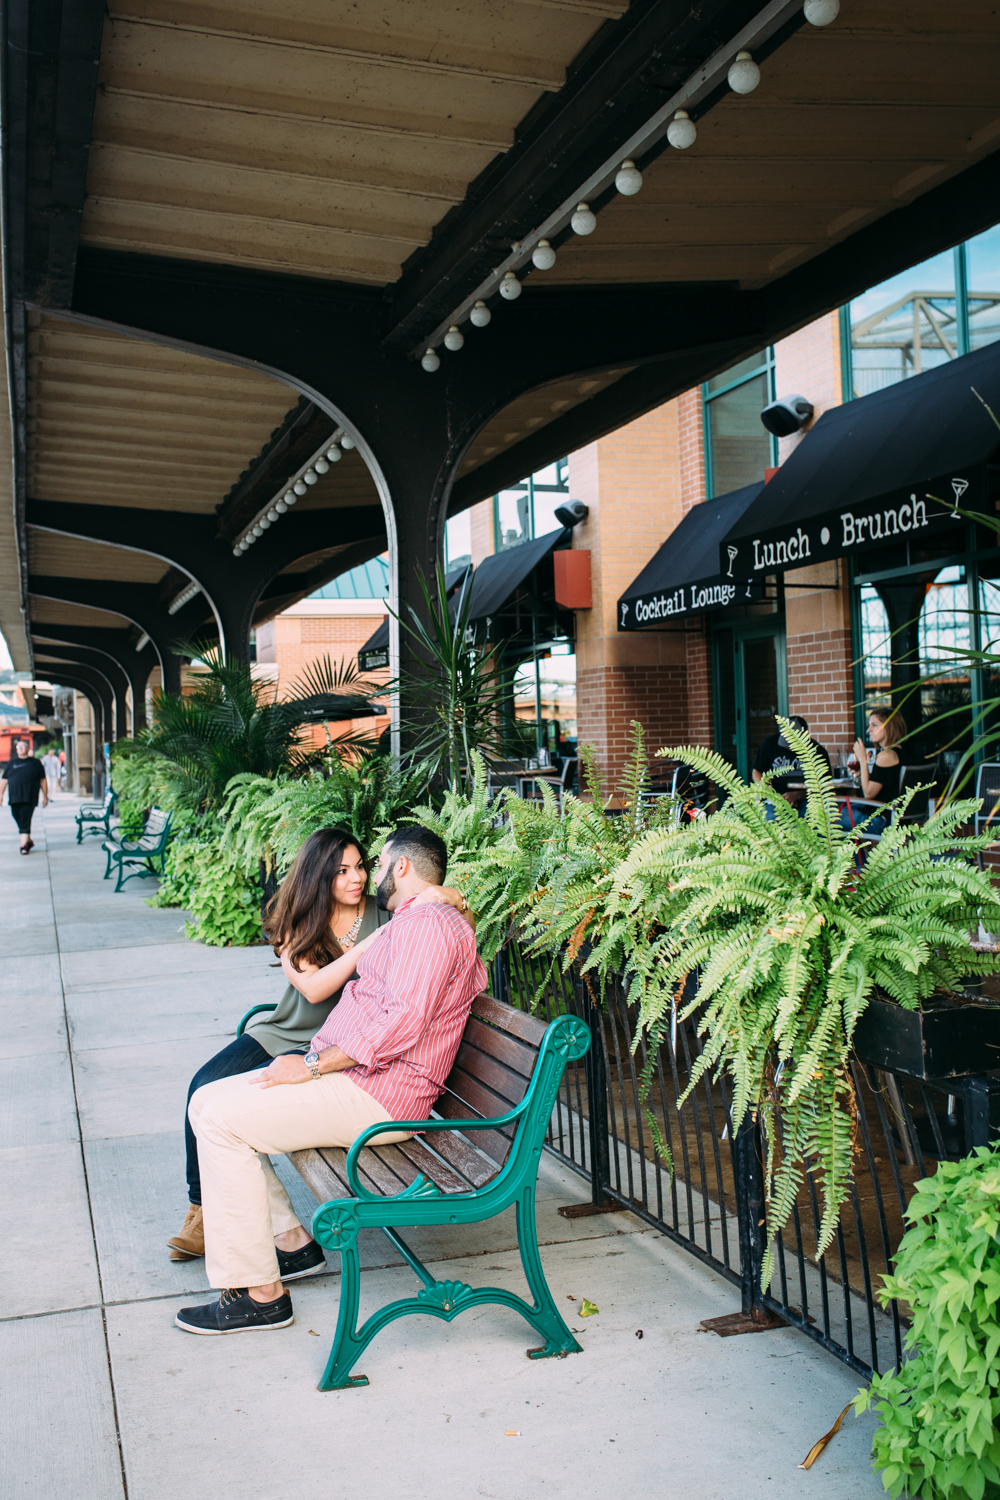 Ashley-reed-photography-pittsburgh-engagement-engagementphotography-engagementphotographer-stationsquare-statio-square-pittsburghengagementphotography-7.jpg